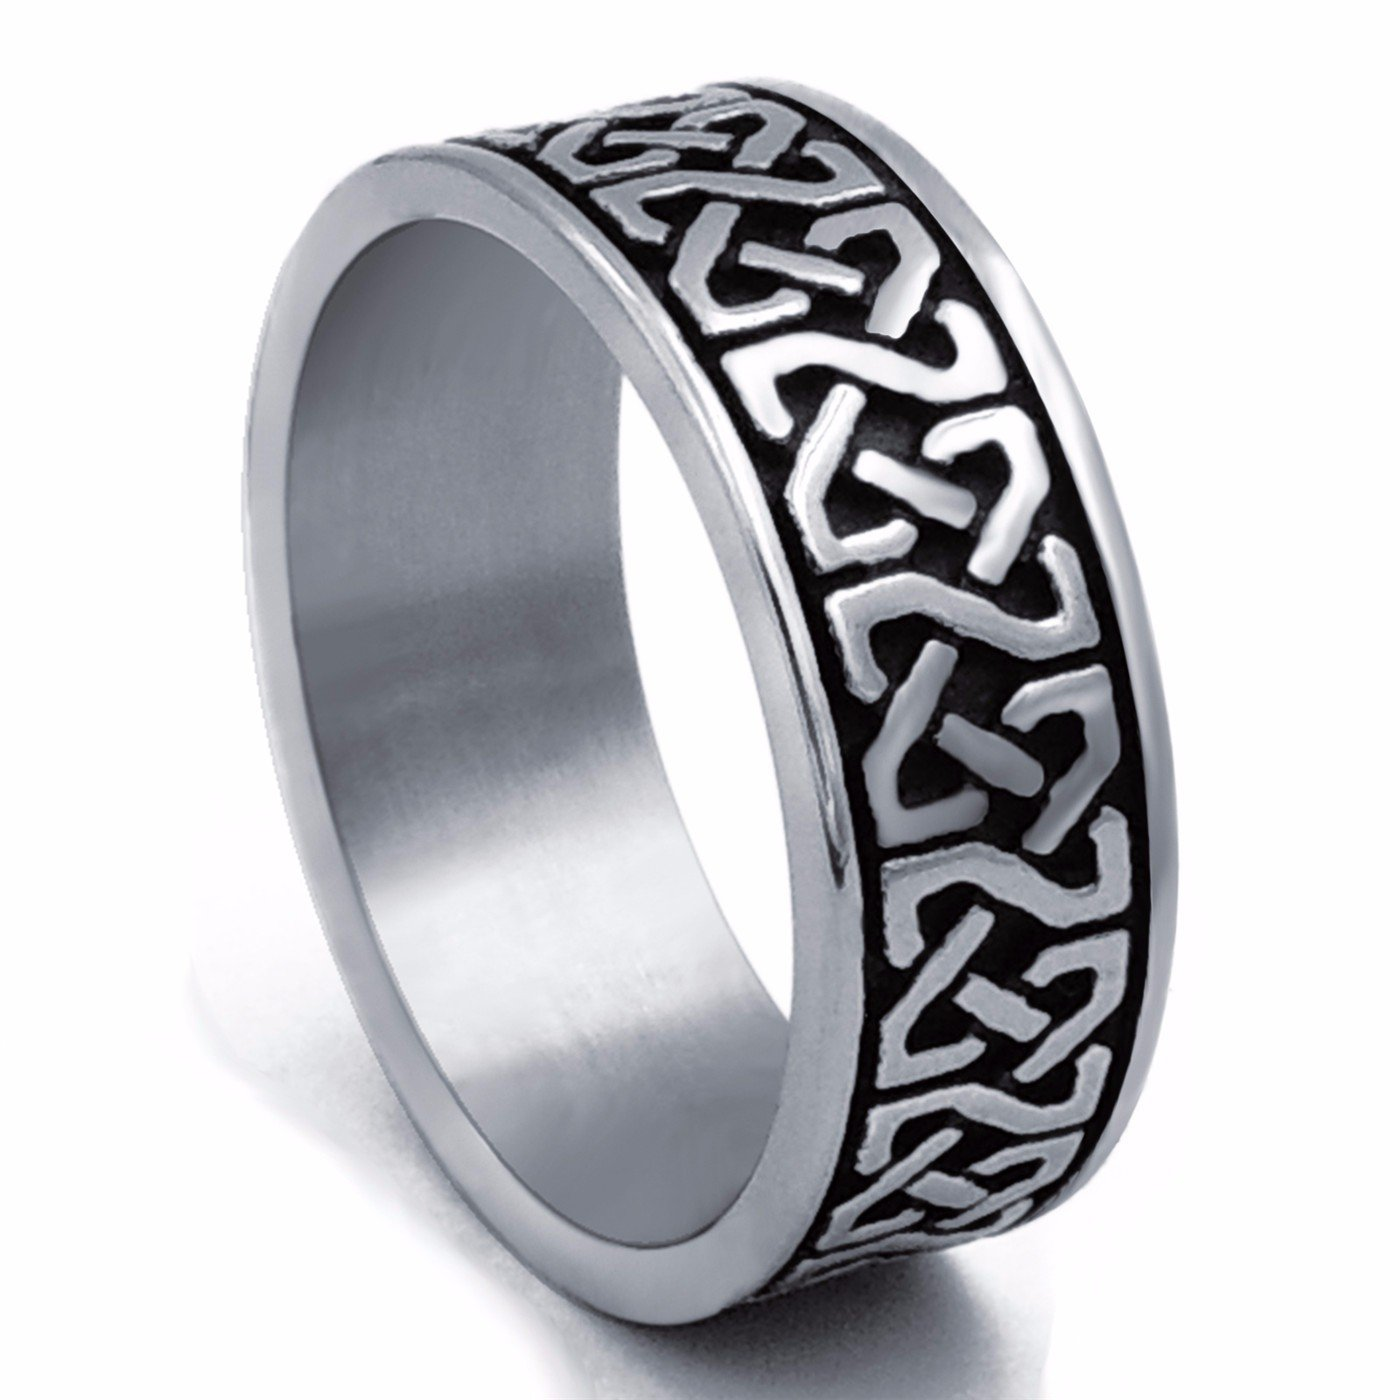 8mm Men's Celtic Knot Stainless Steel Ring Band Jewelry US Size 8-15 Elfasio